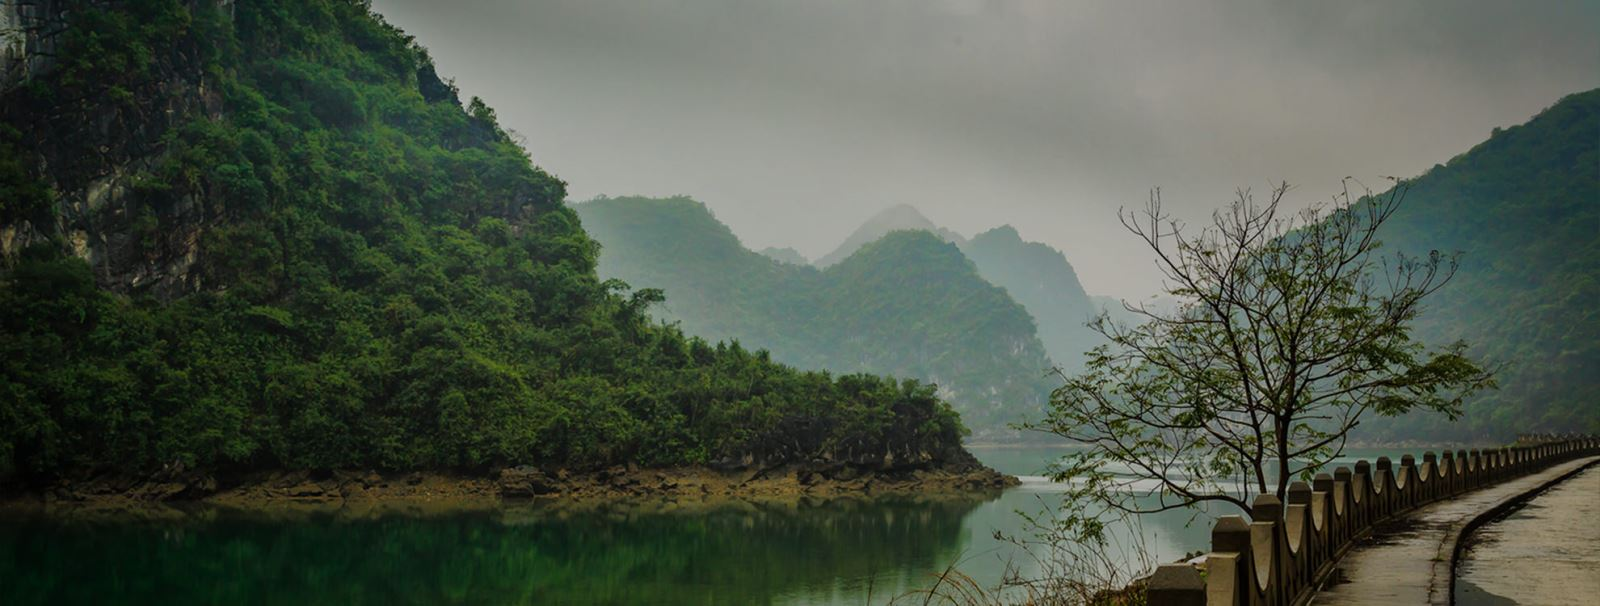 Cat Ba island - A gem of the Gulf of Tonkin